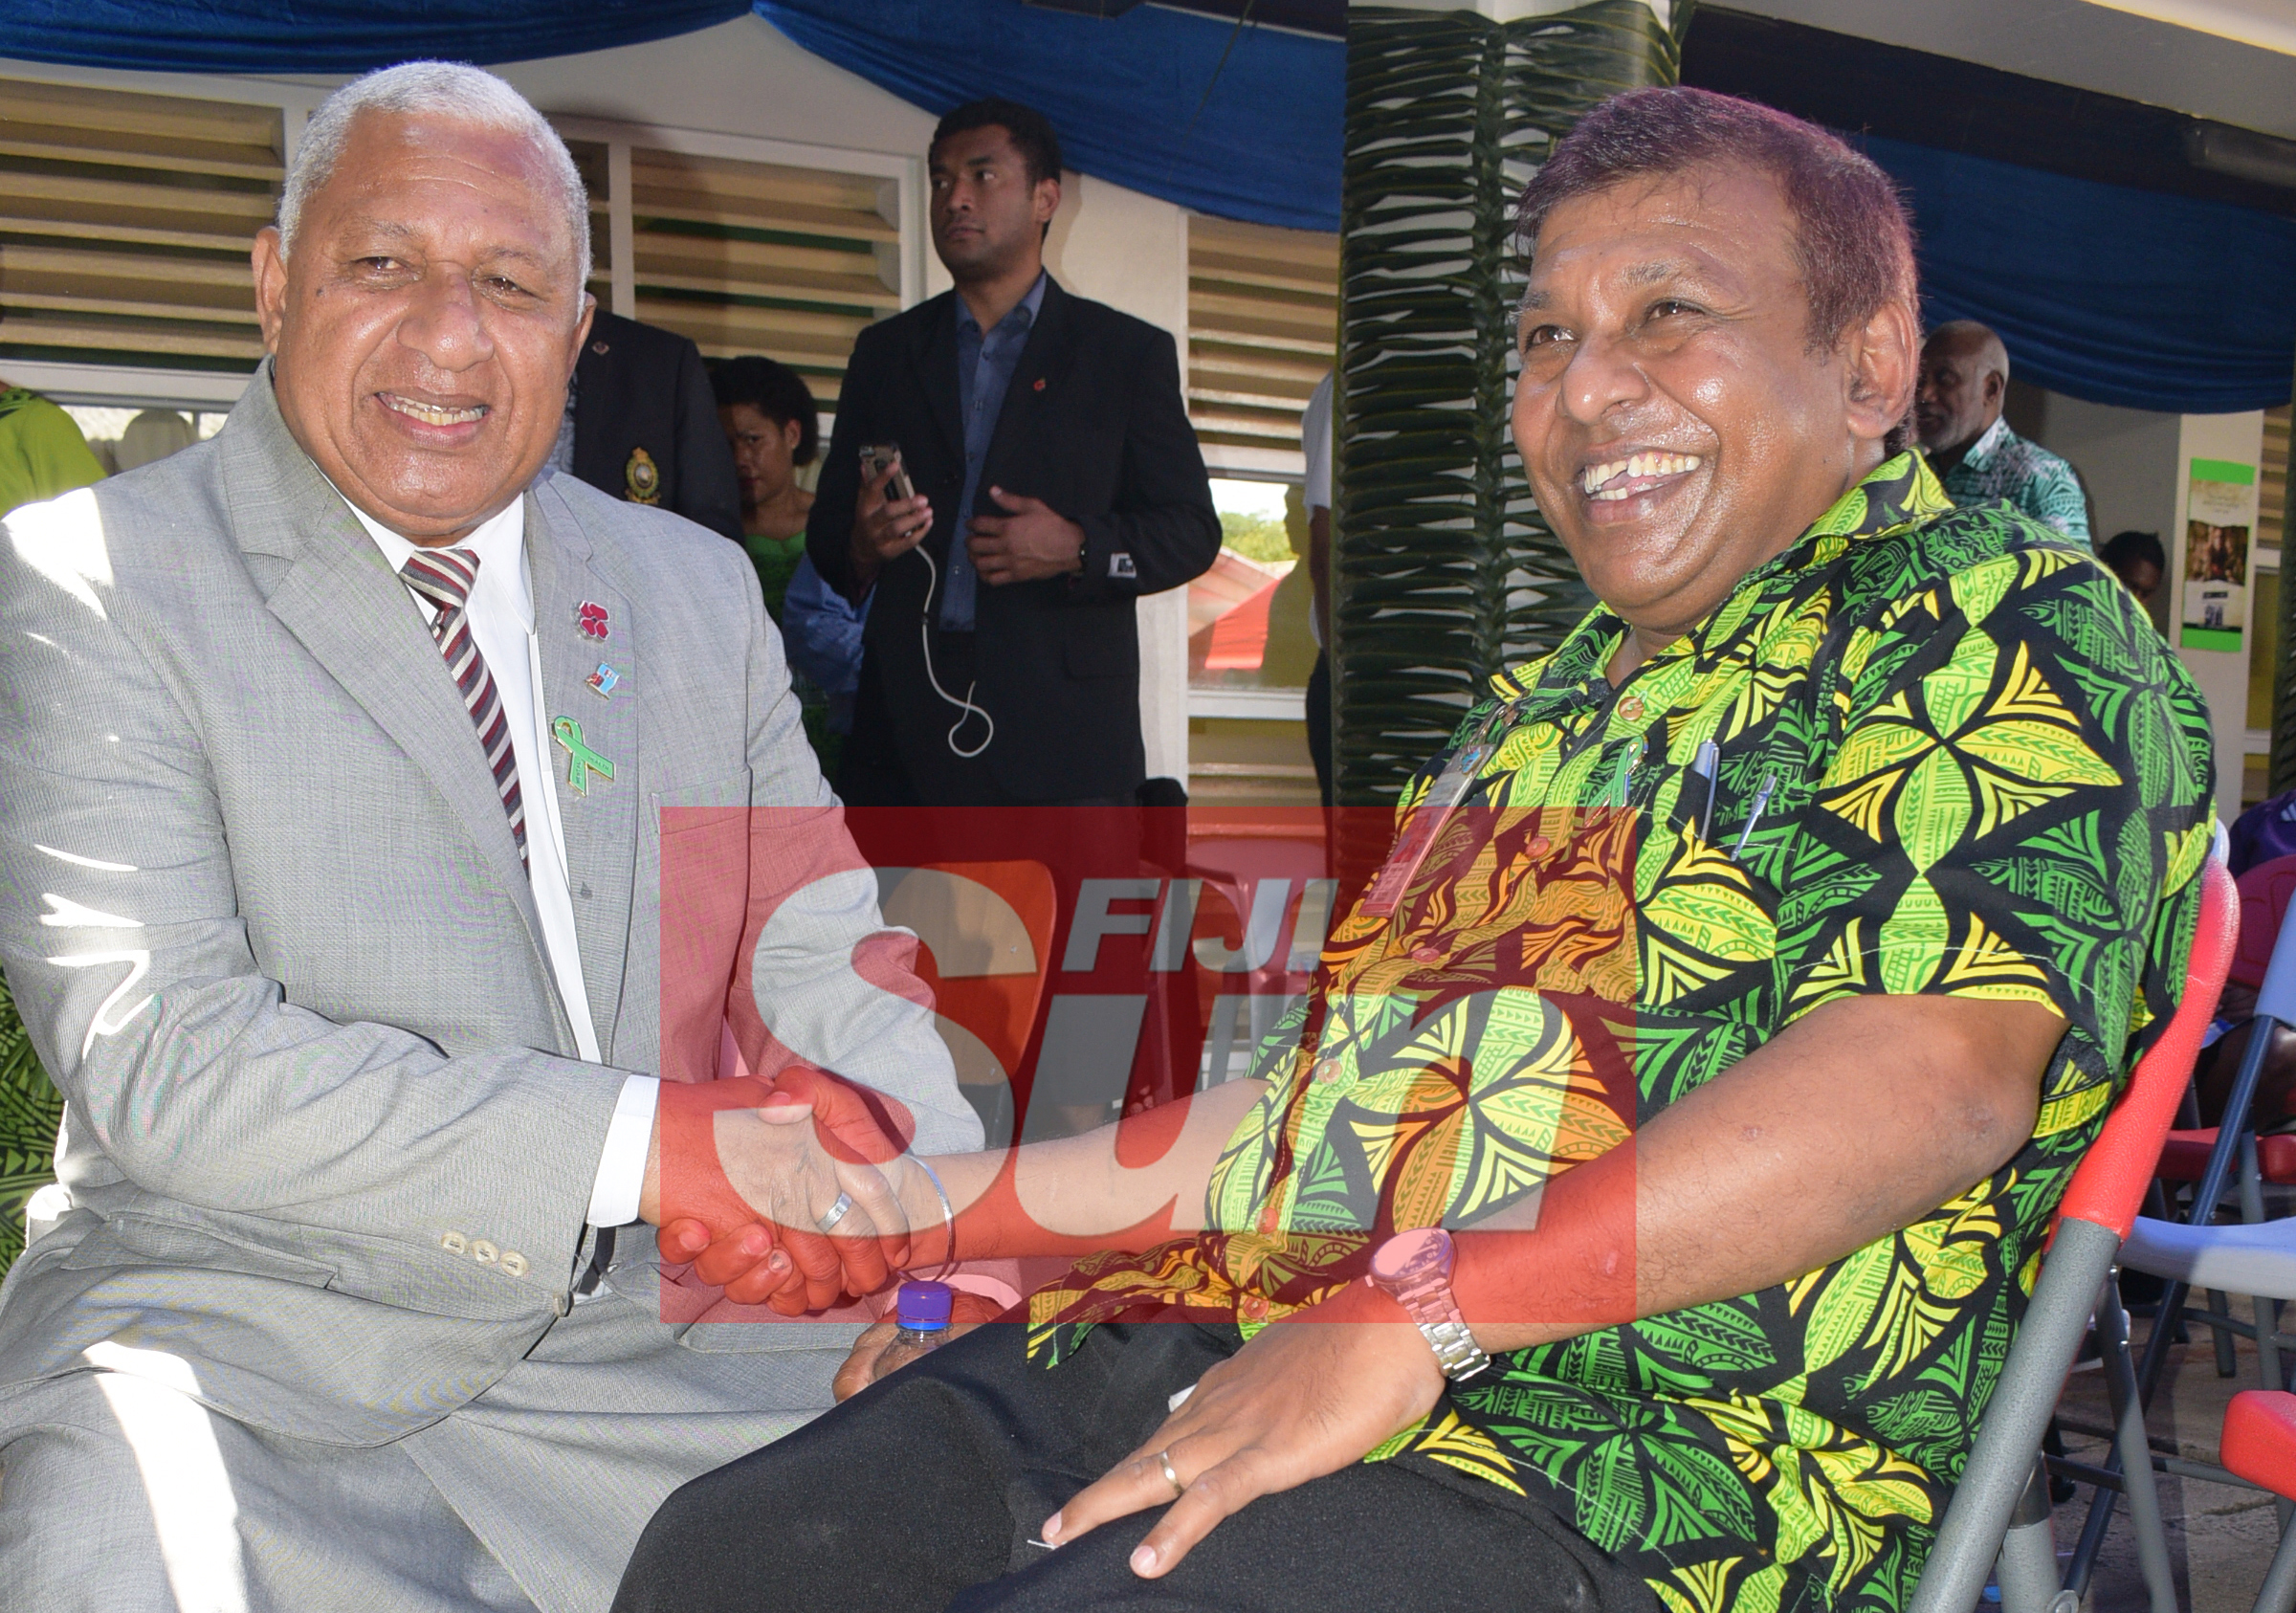 Prime Minister Voreqe Bainimarama with St. Giles Hospital operator Pranay Chand while opening the Alcohol and Drug unit (AOD Unit) at the hospital on November 6, 2019. Photo: Ronald Kumar.